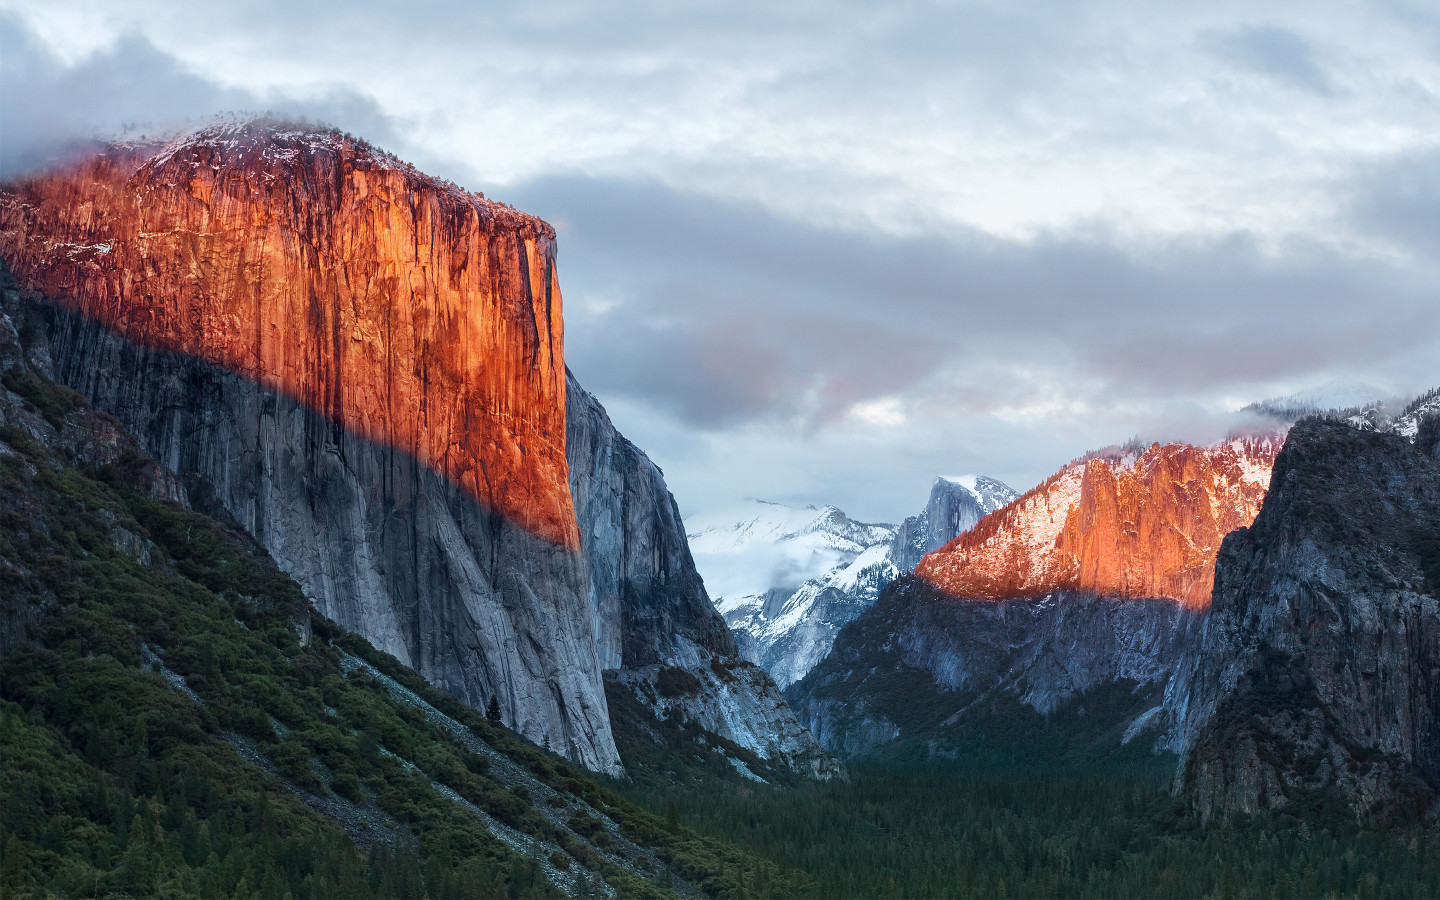 Apple Mac Os X El Capitan HD Wallpaper 6269 1440x900